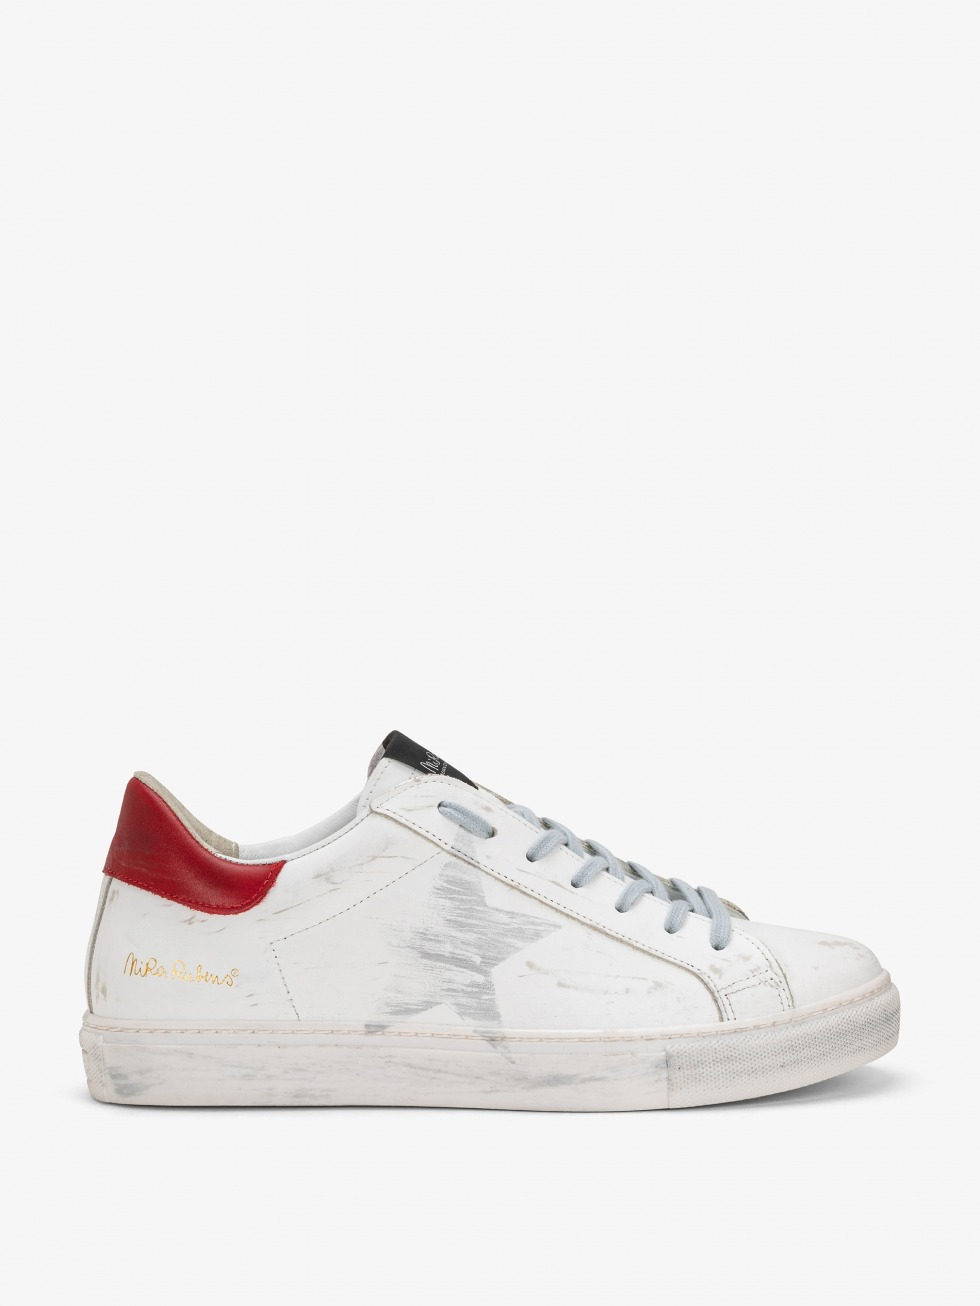 Martini M Sneakers Vintage Red - Star